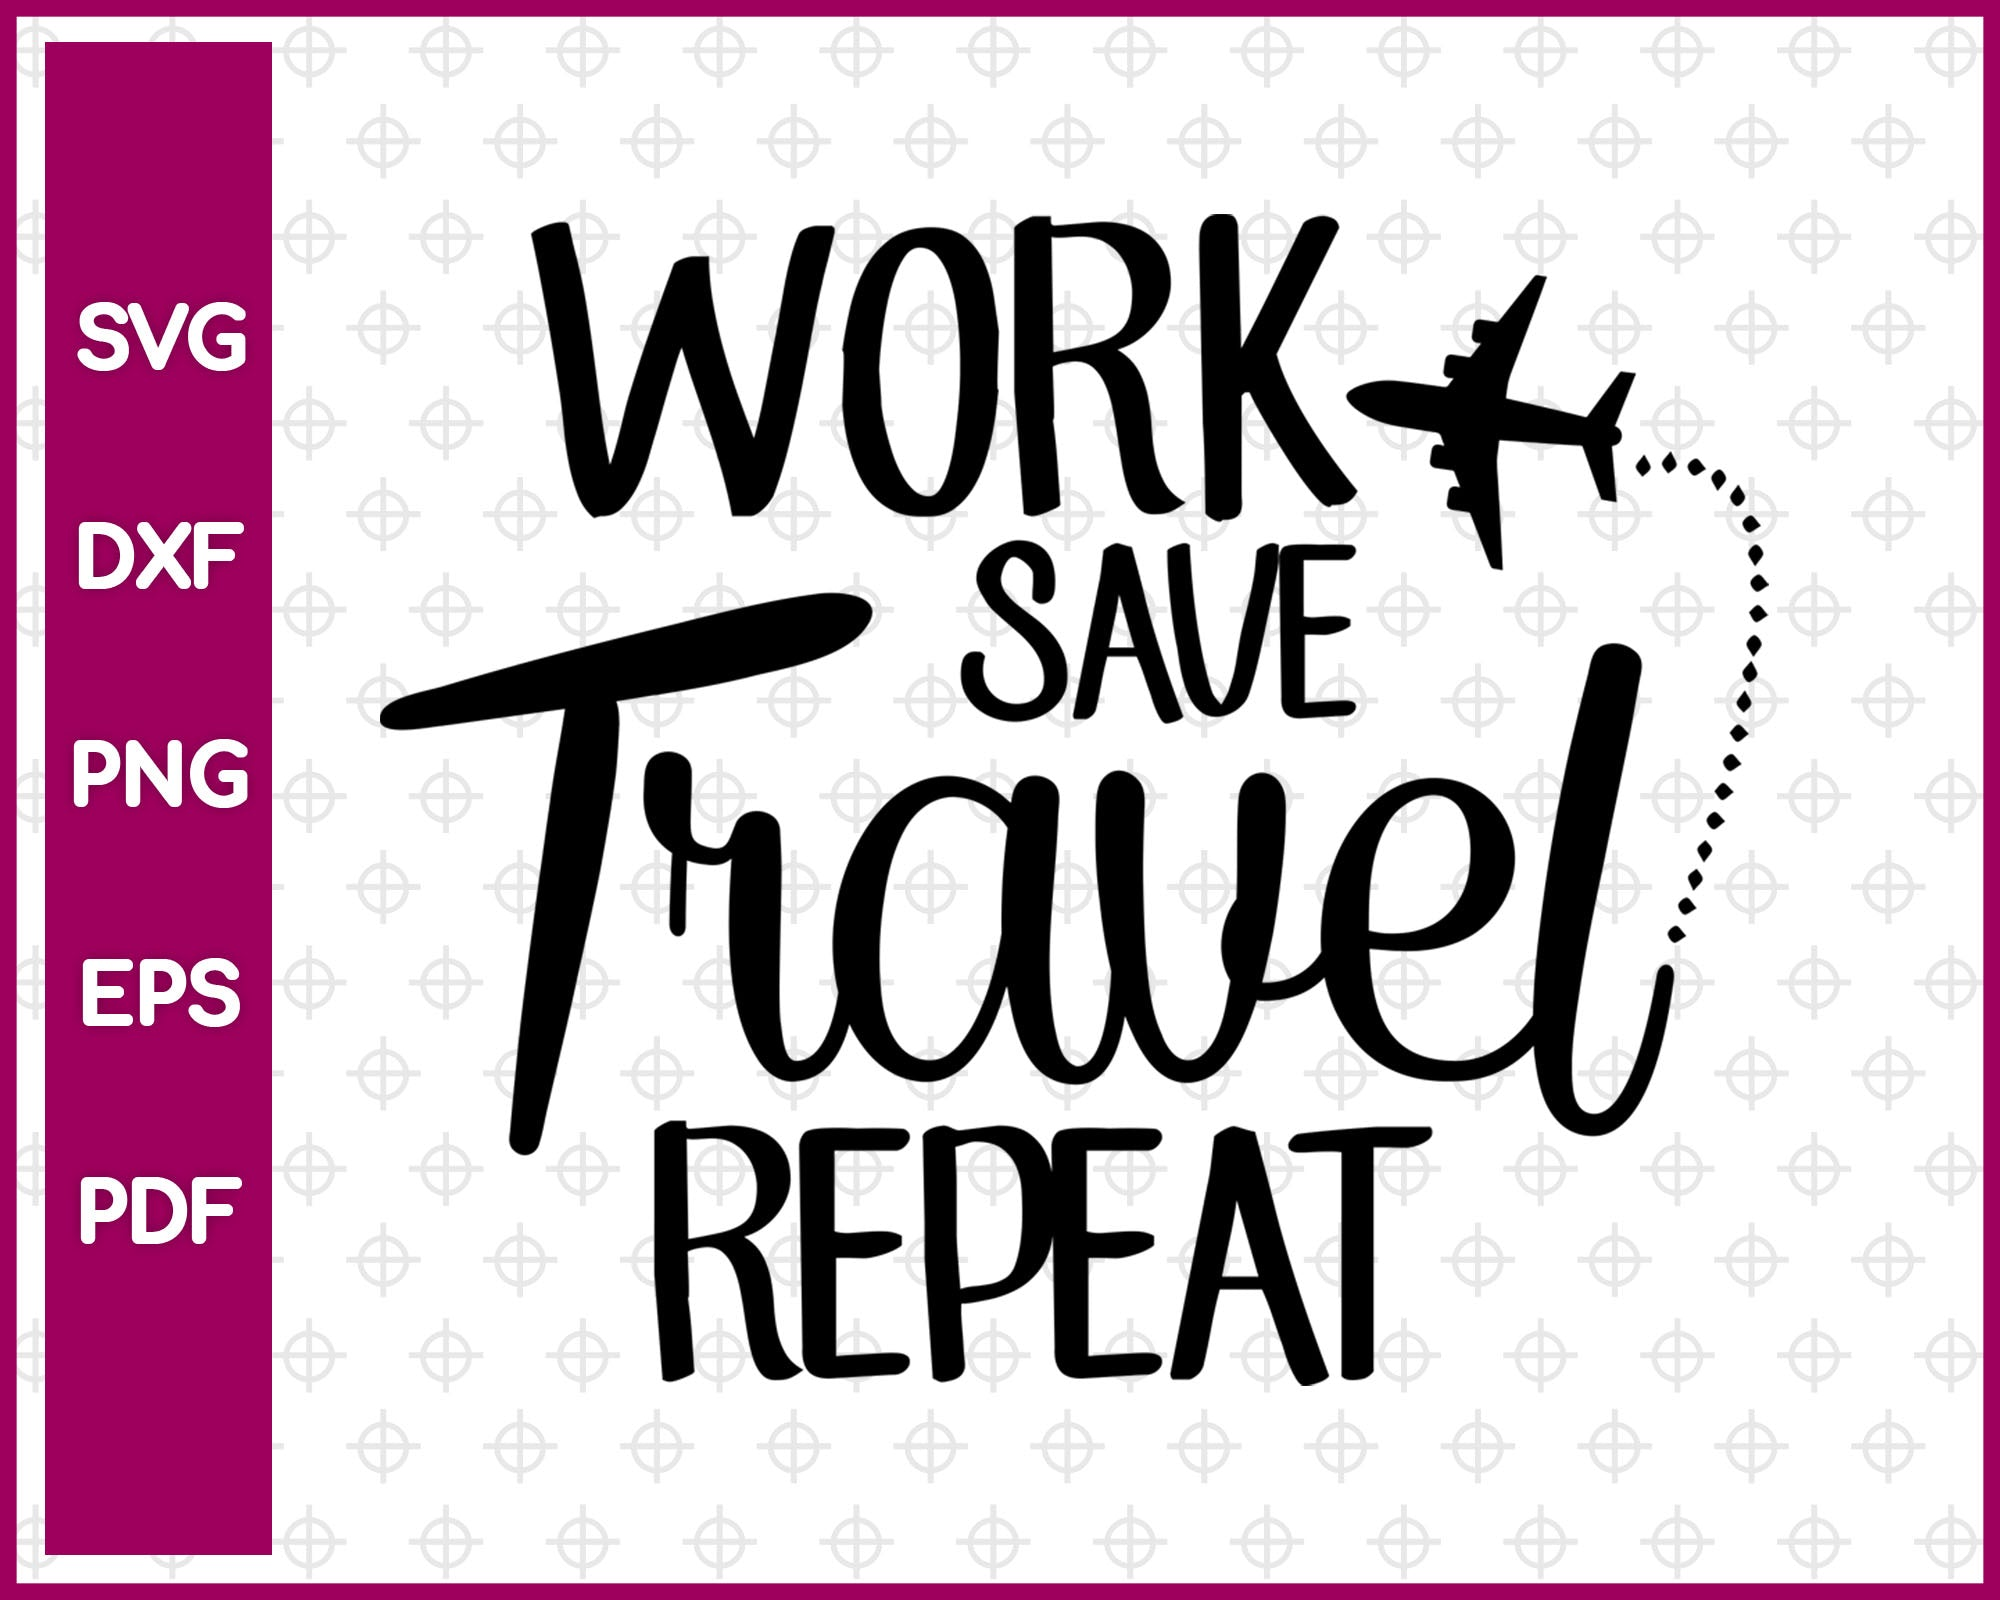 Travel Svg Design, Travel Svg, Travel Svg Dxf Png Eps Pdf Printable Files